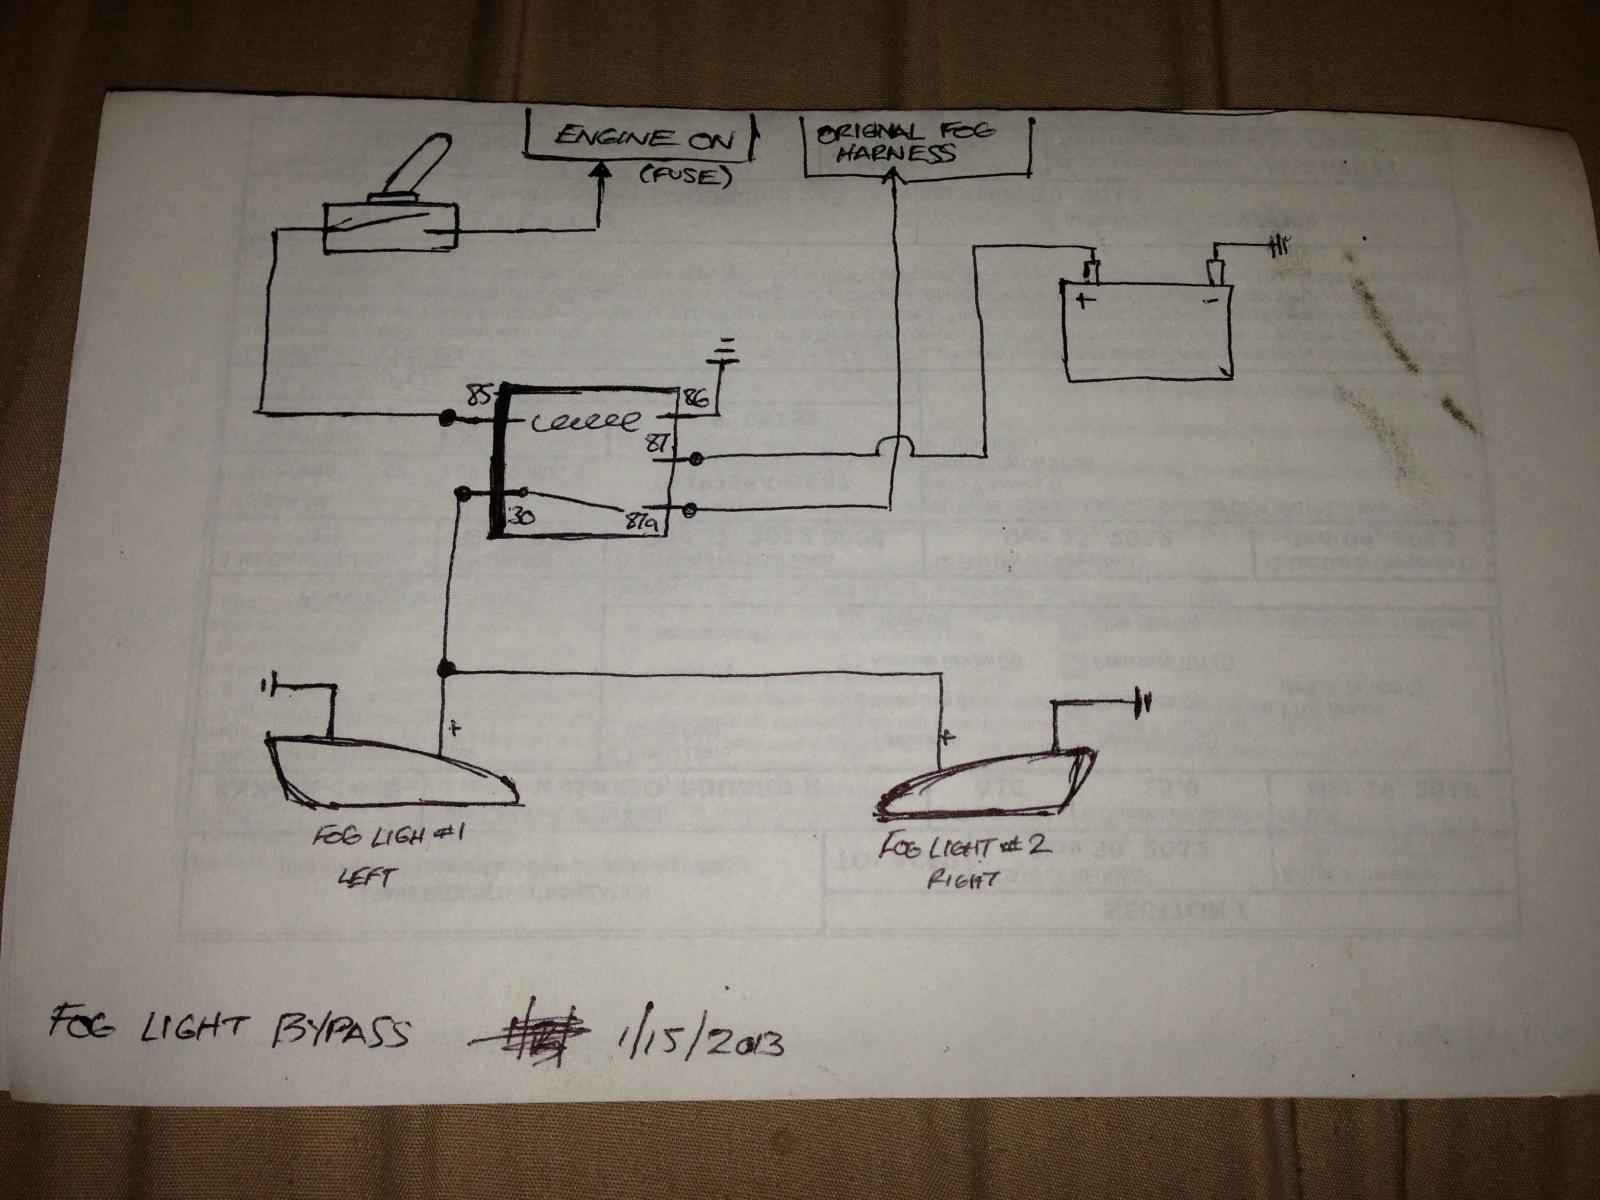 Simple wiring diagram to bypass foglights works wo headlights or simple wiring diagram to bypass foglights works wo headlights or w highbeams asfbconference2016 Image collections